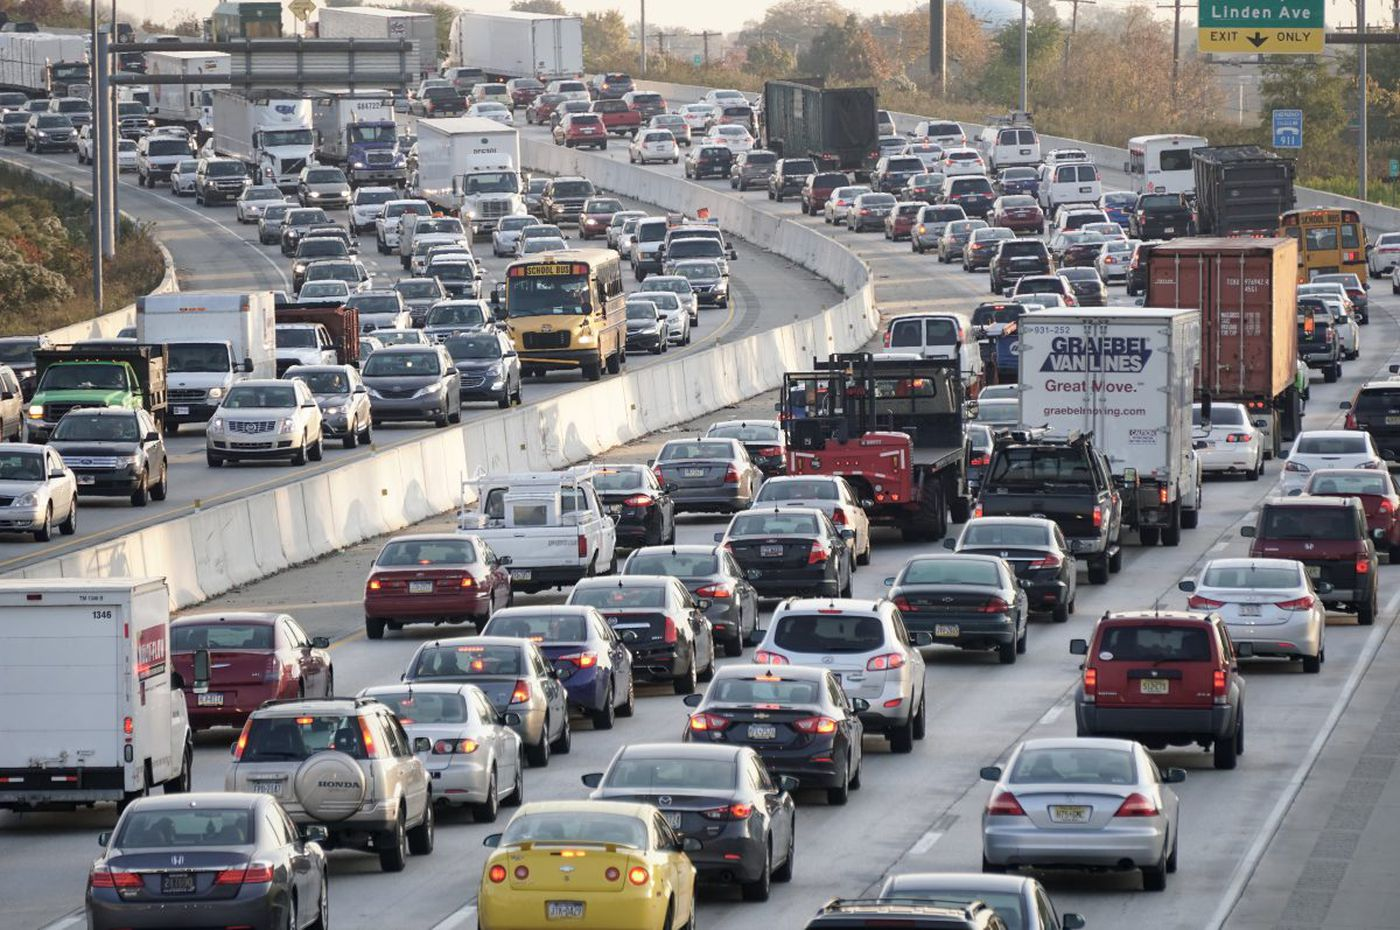 PennDot hires Hill to widen I-95 in Philly